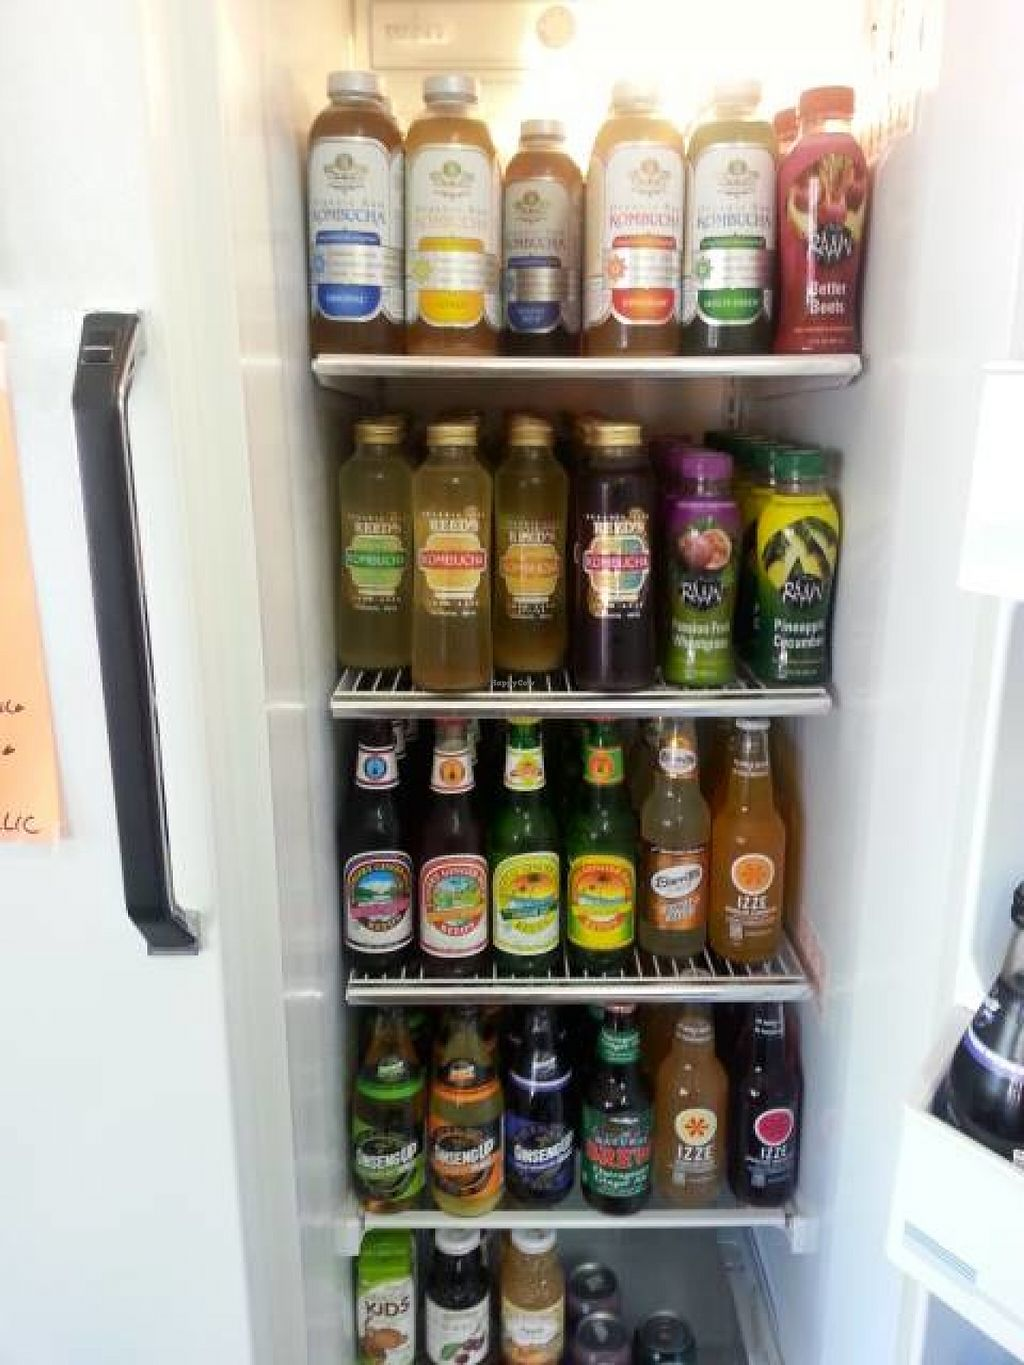 """Photo of Burnsville Health and Nutrition  by <a href=""""/members/profile/phurious"""">phurious</a> <br/>Drink Fridge <br/> June 11, 2016  - <a href='/contact/abuse/image/74943/153544'>Report</a>"""